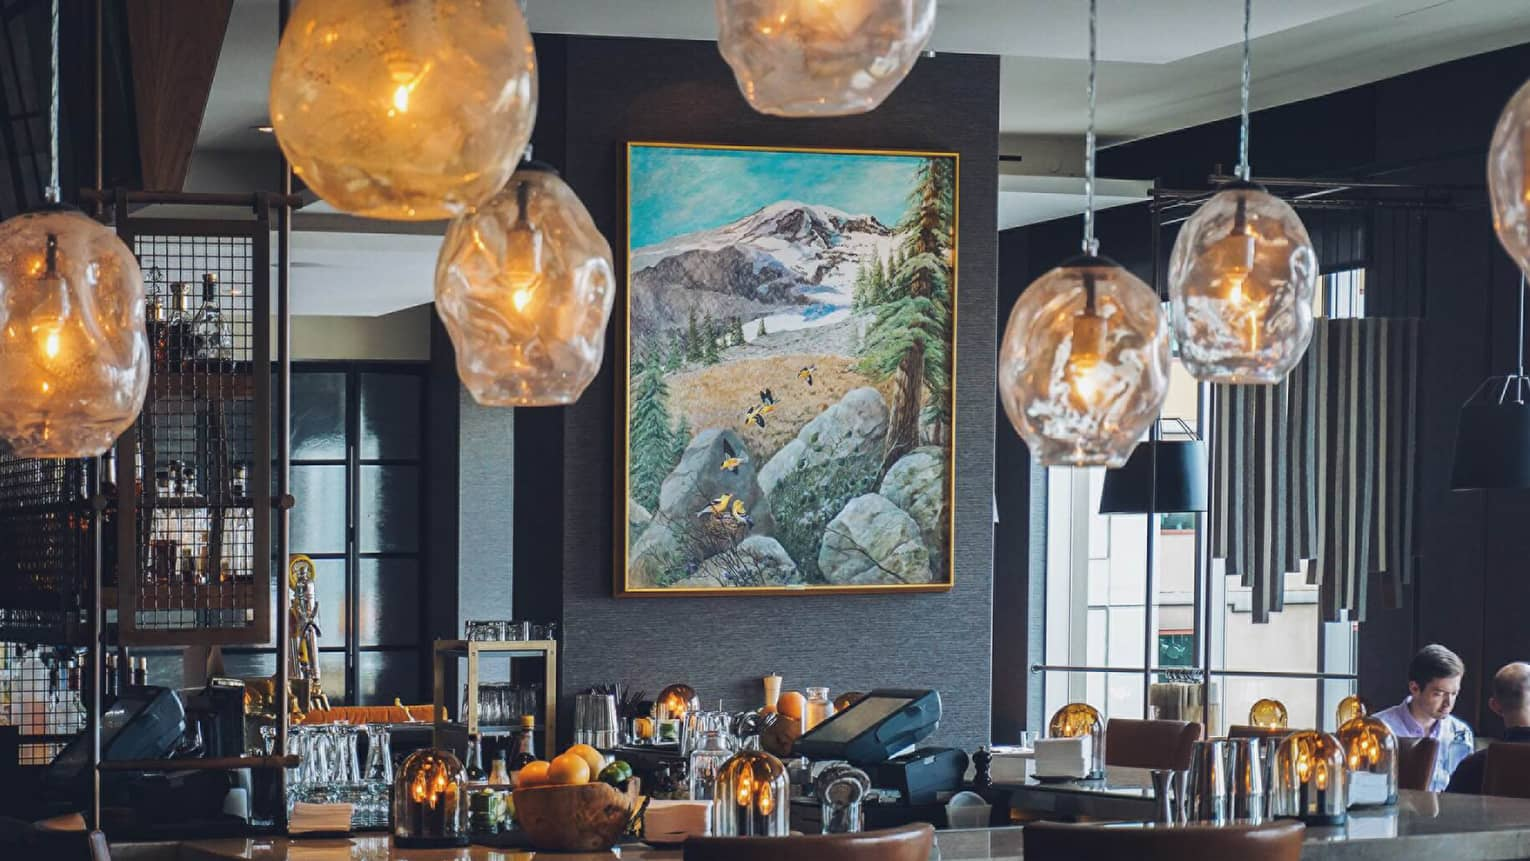 Amber-tinged glass lamps hang over bar in front of modern landscape painting in Goldfinch Tavern